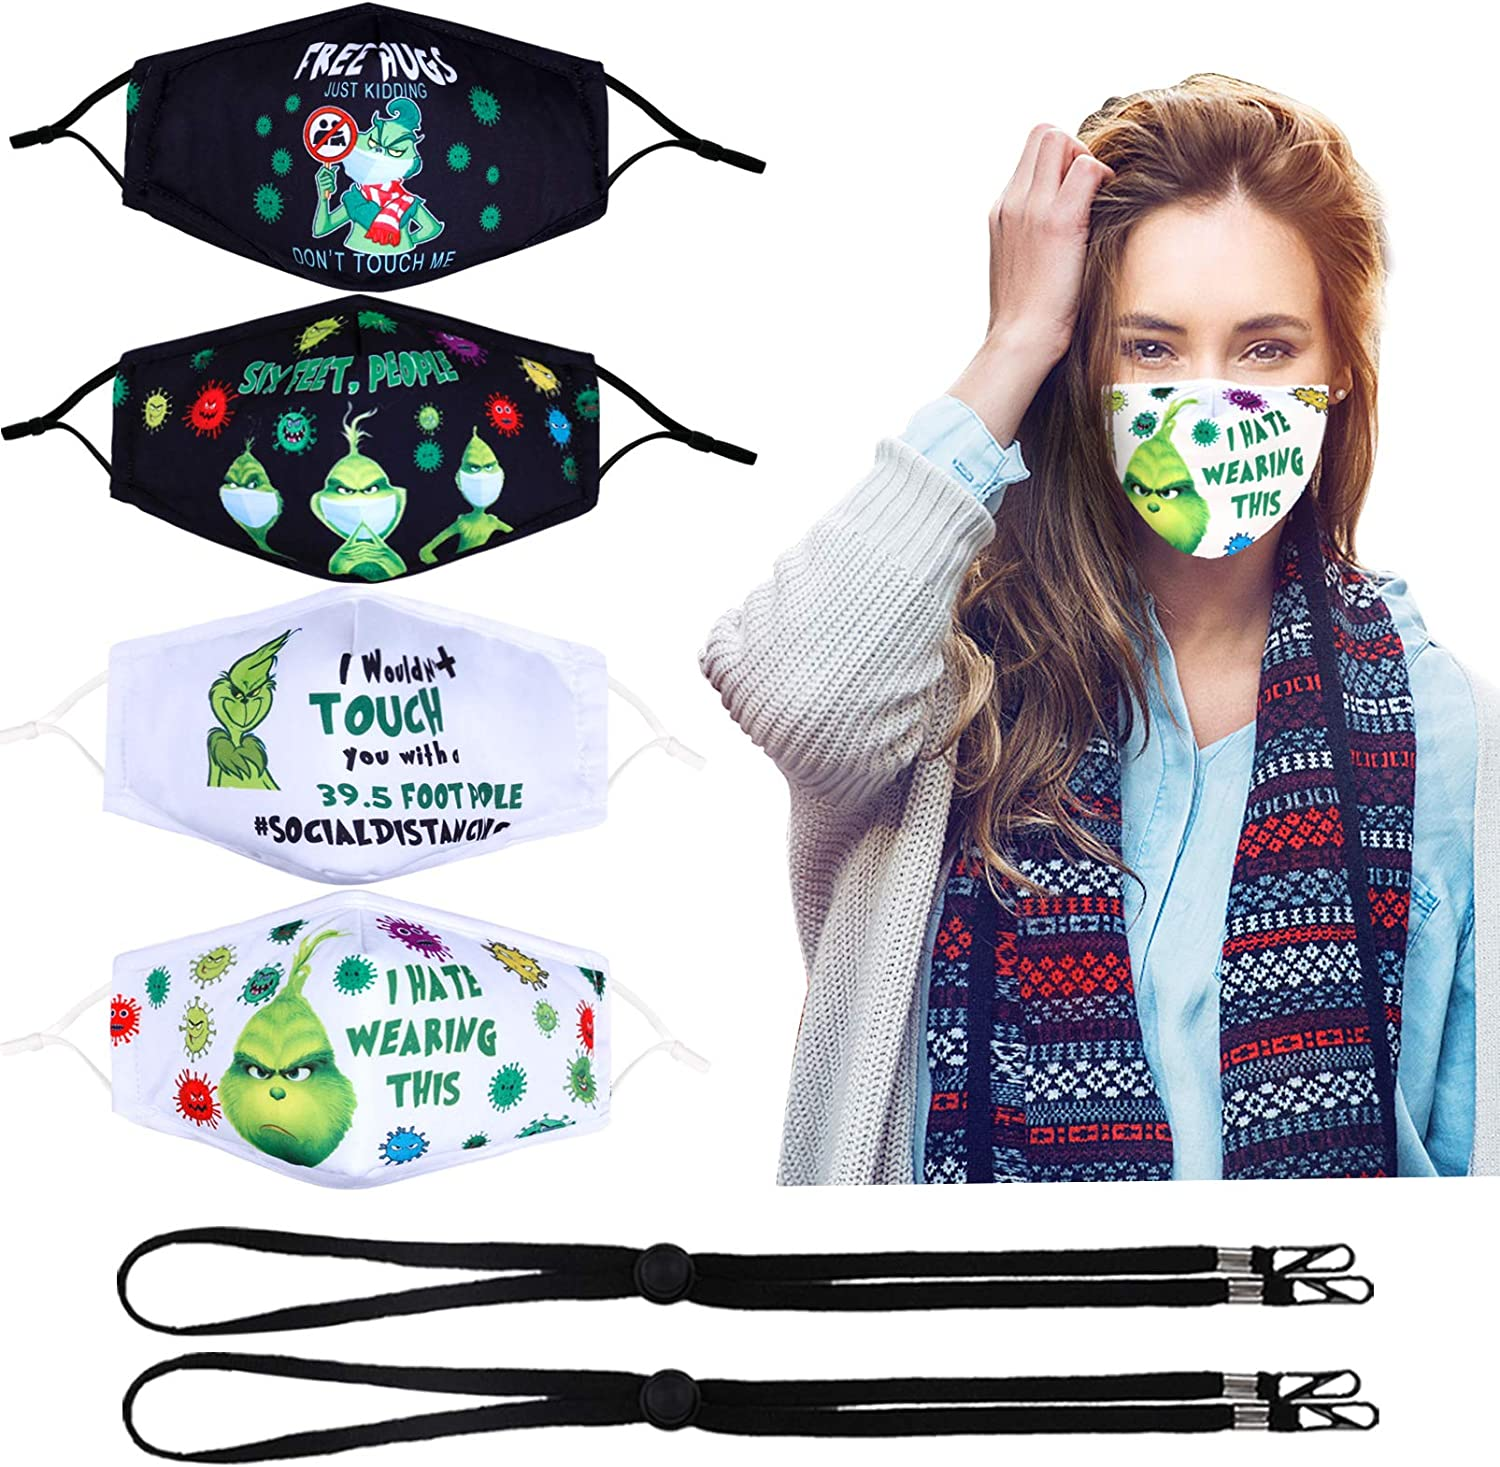 Woplagyreat New Designed Reusable Face Cover, Matching The Patterns Elaborately for Every Pack